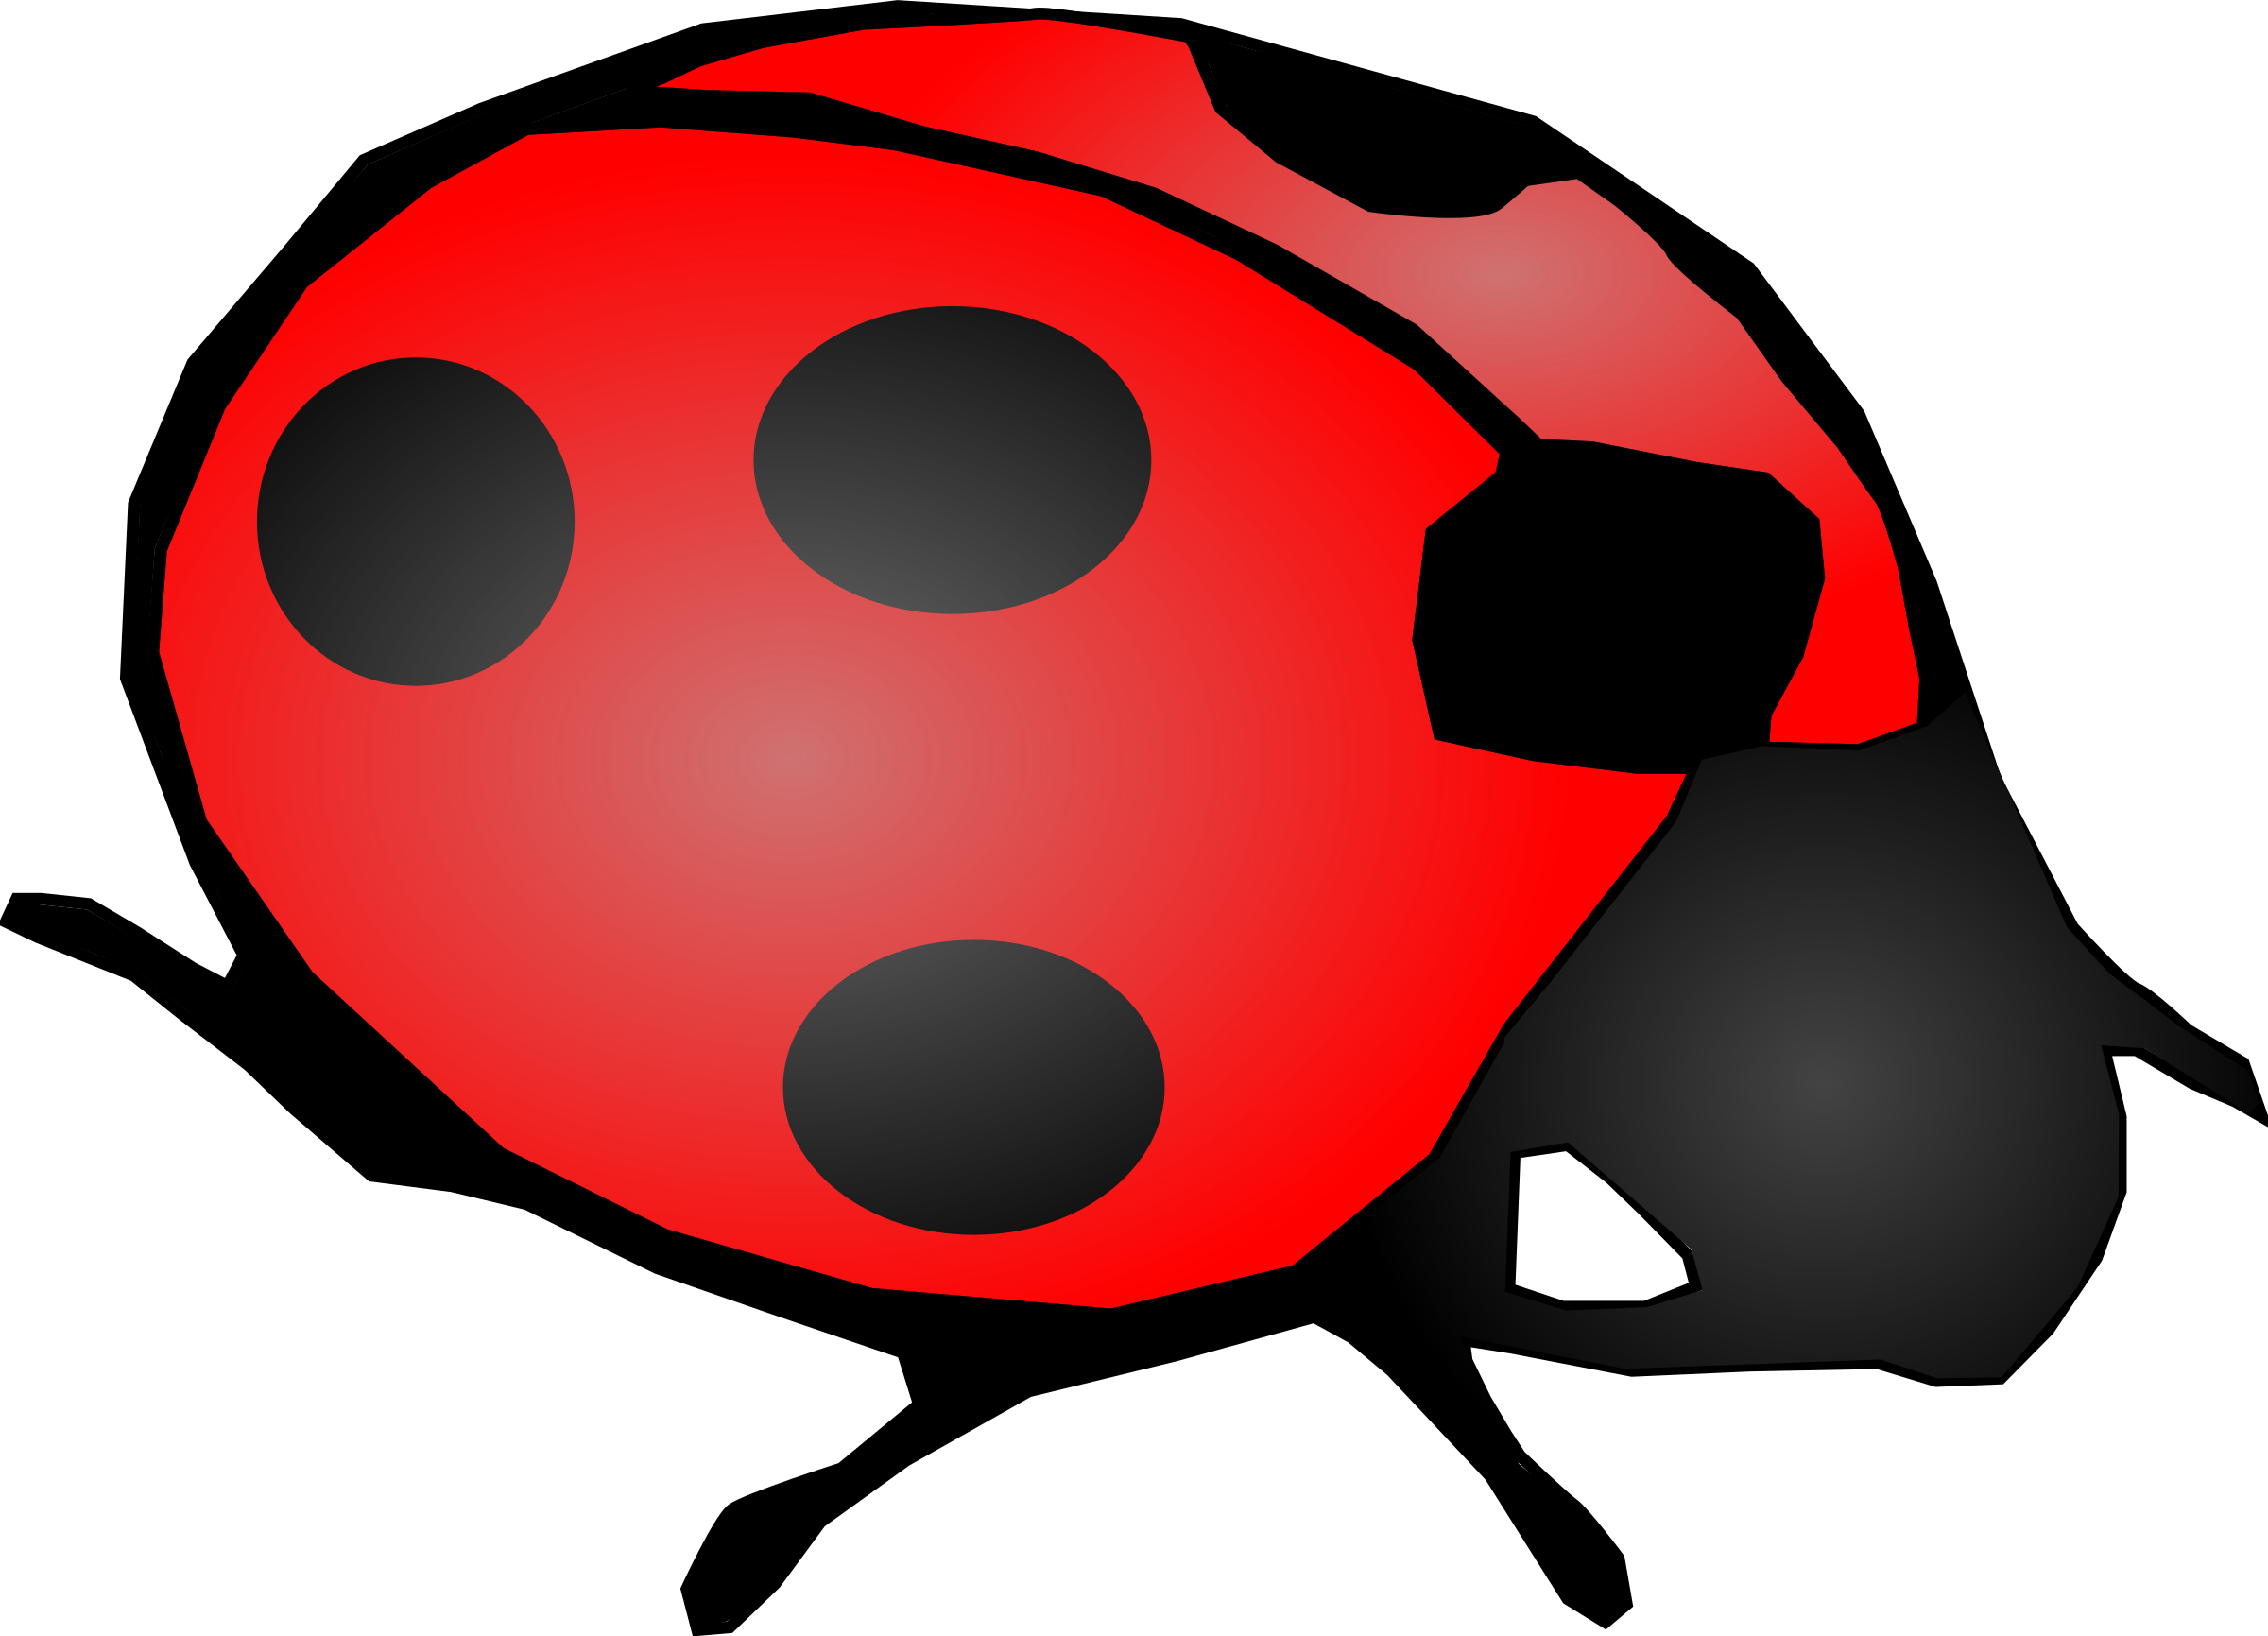 lady bug by Machovka